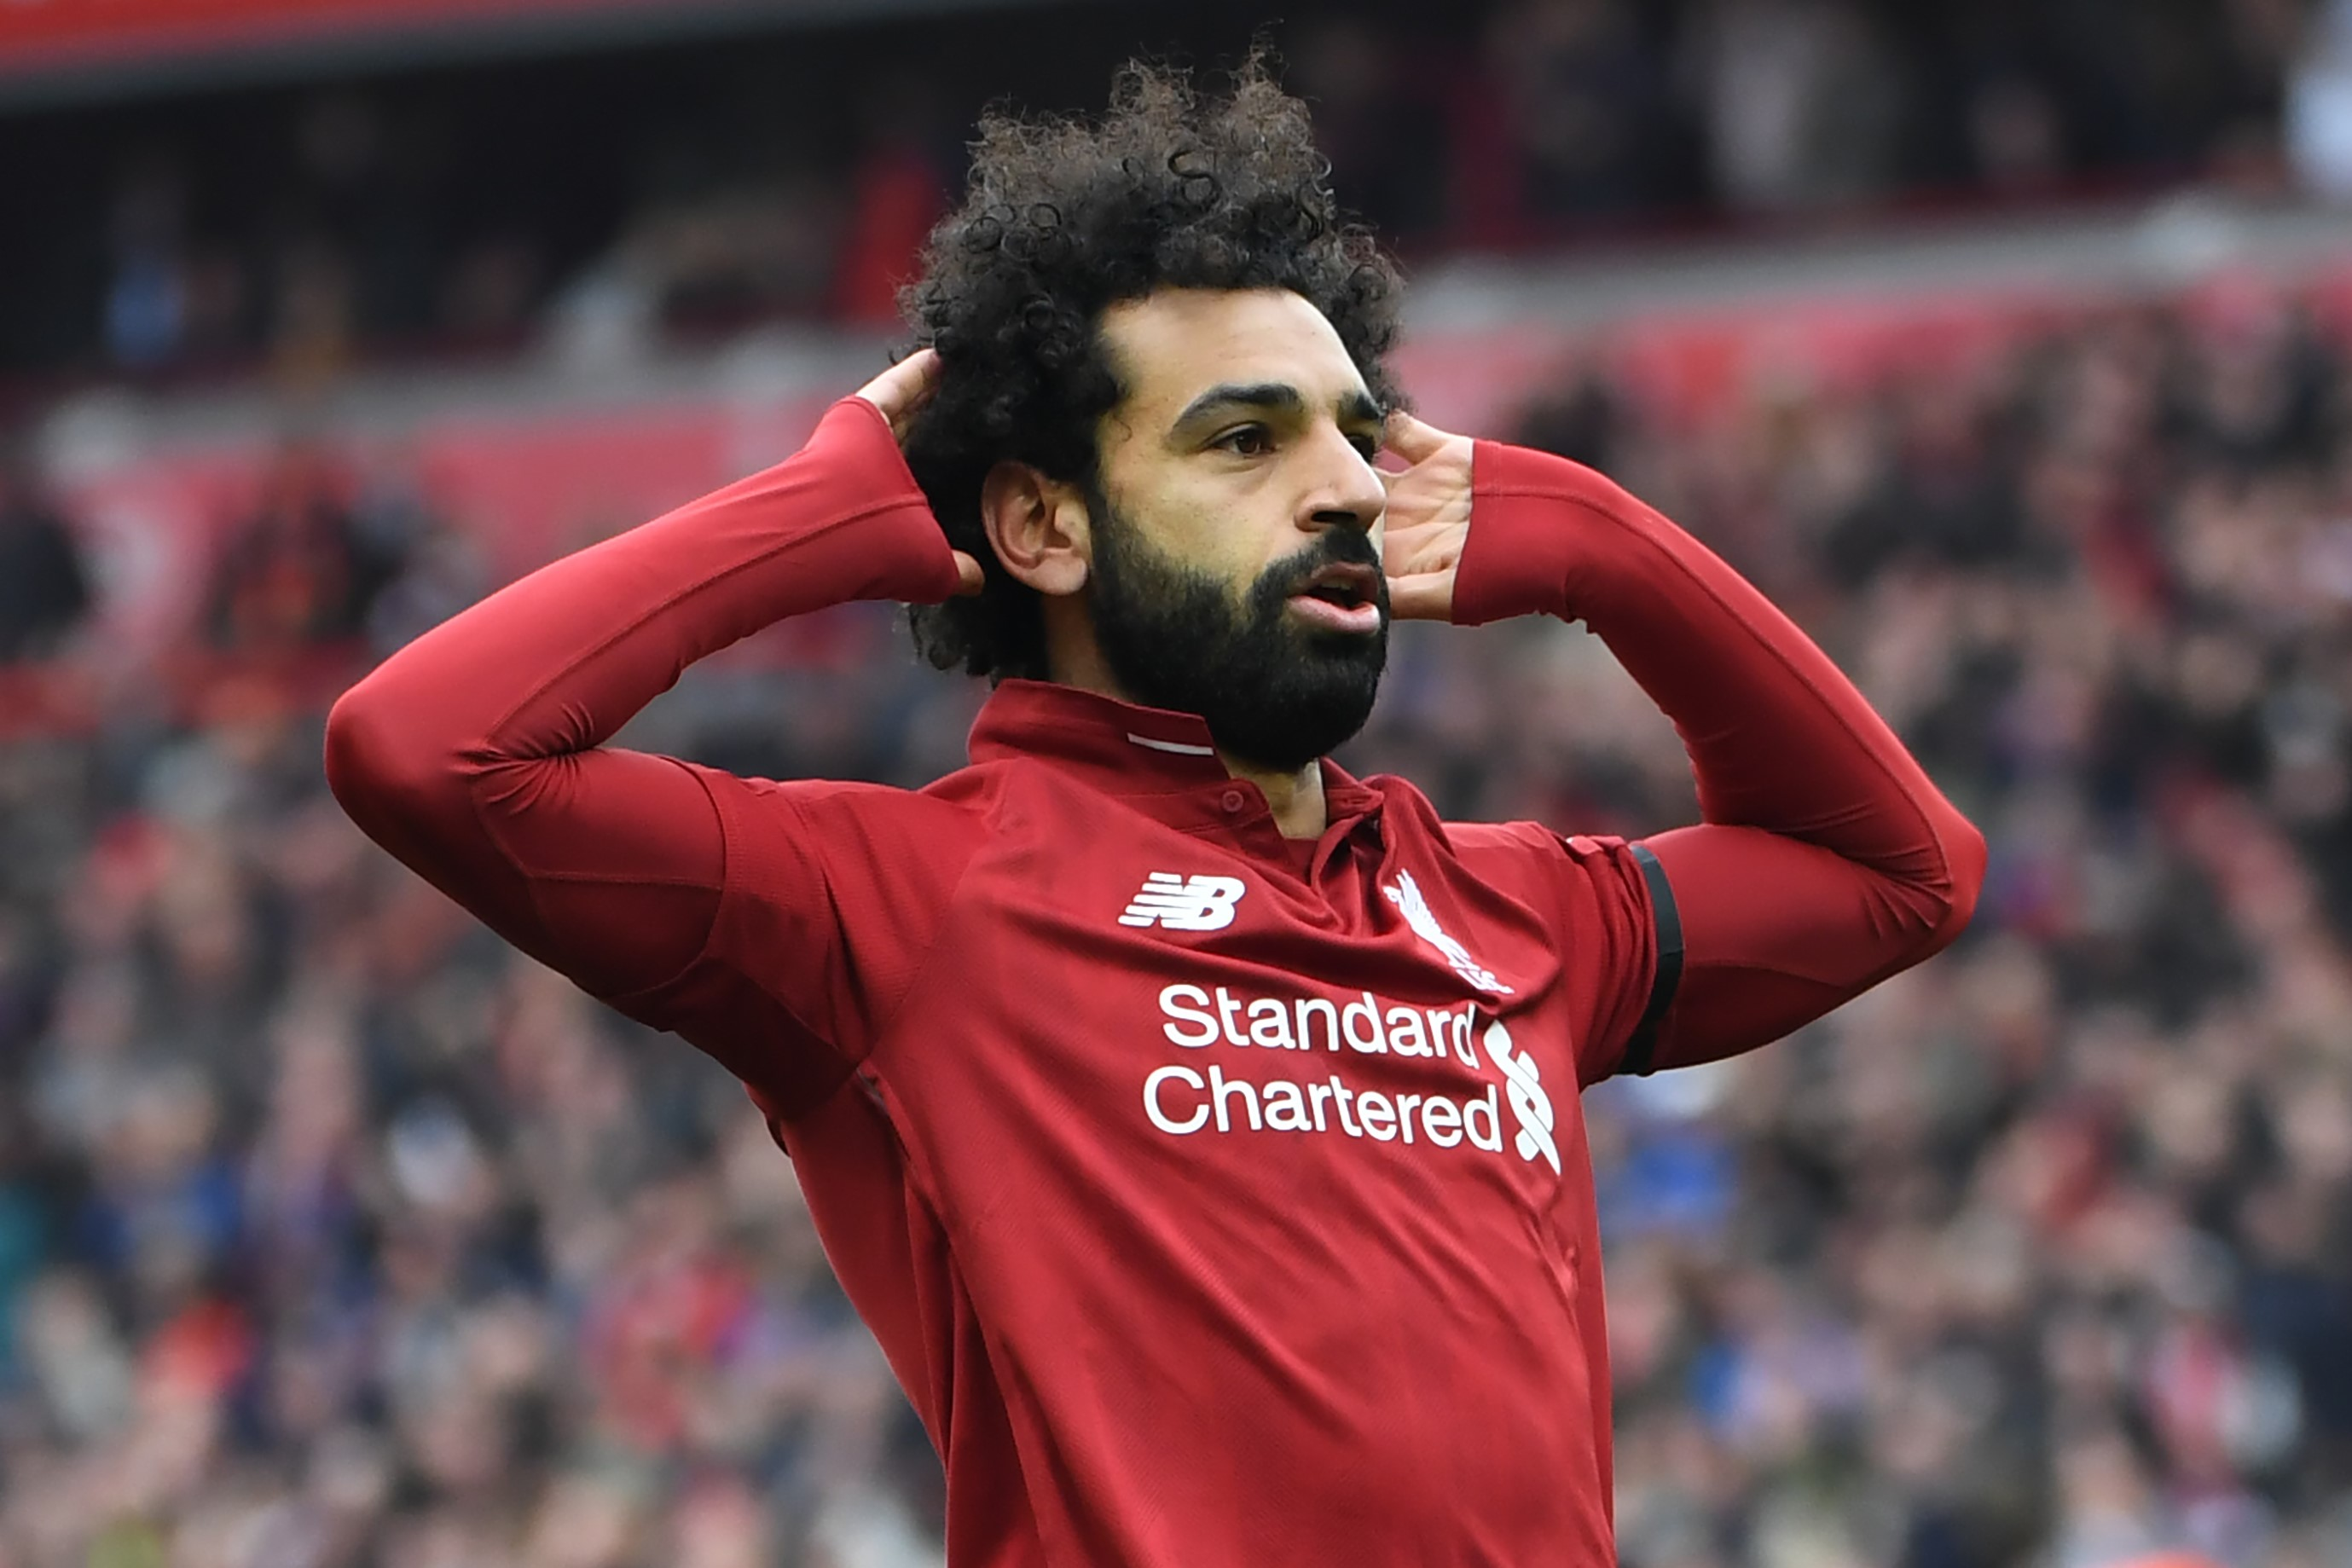 Salah helping to reduce hate crime, says study